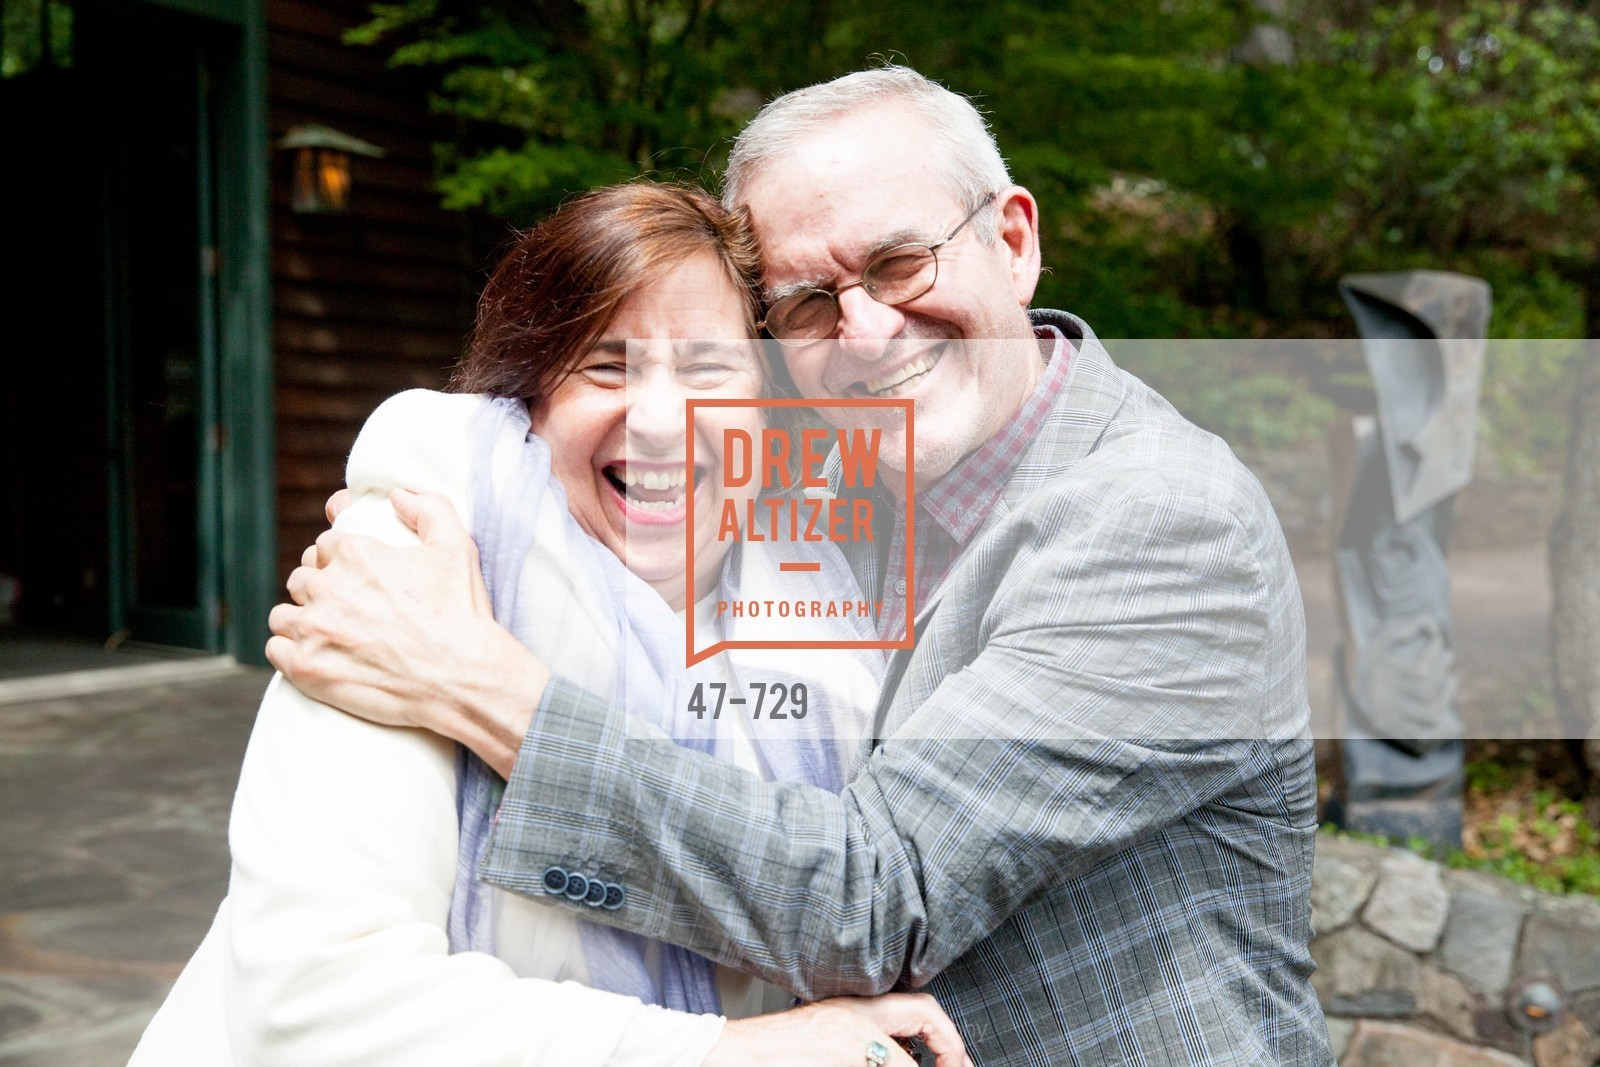 Jennifer Niedermeyer, Jack Higgins, THE TRUST FOR PUBLIC LAND Luncheon Hosted by THE DREVER FAMILY FOUNDATION, US, May 14th, 2015,Drew Altizer, Drew Altizer Photography, full-service agency, private events, San Francisco photographer, photographer california